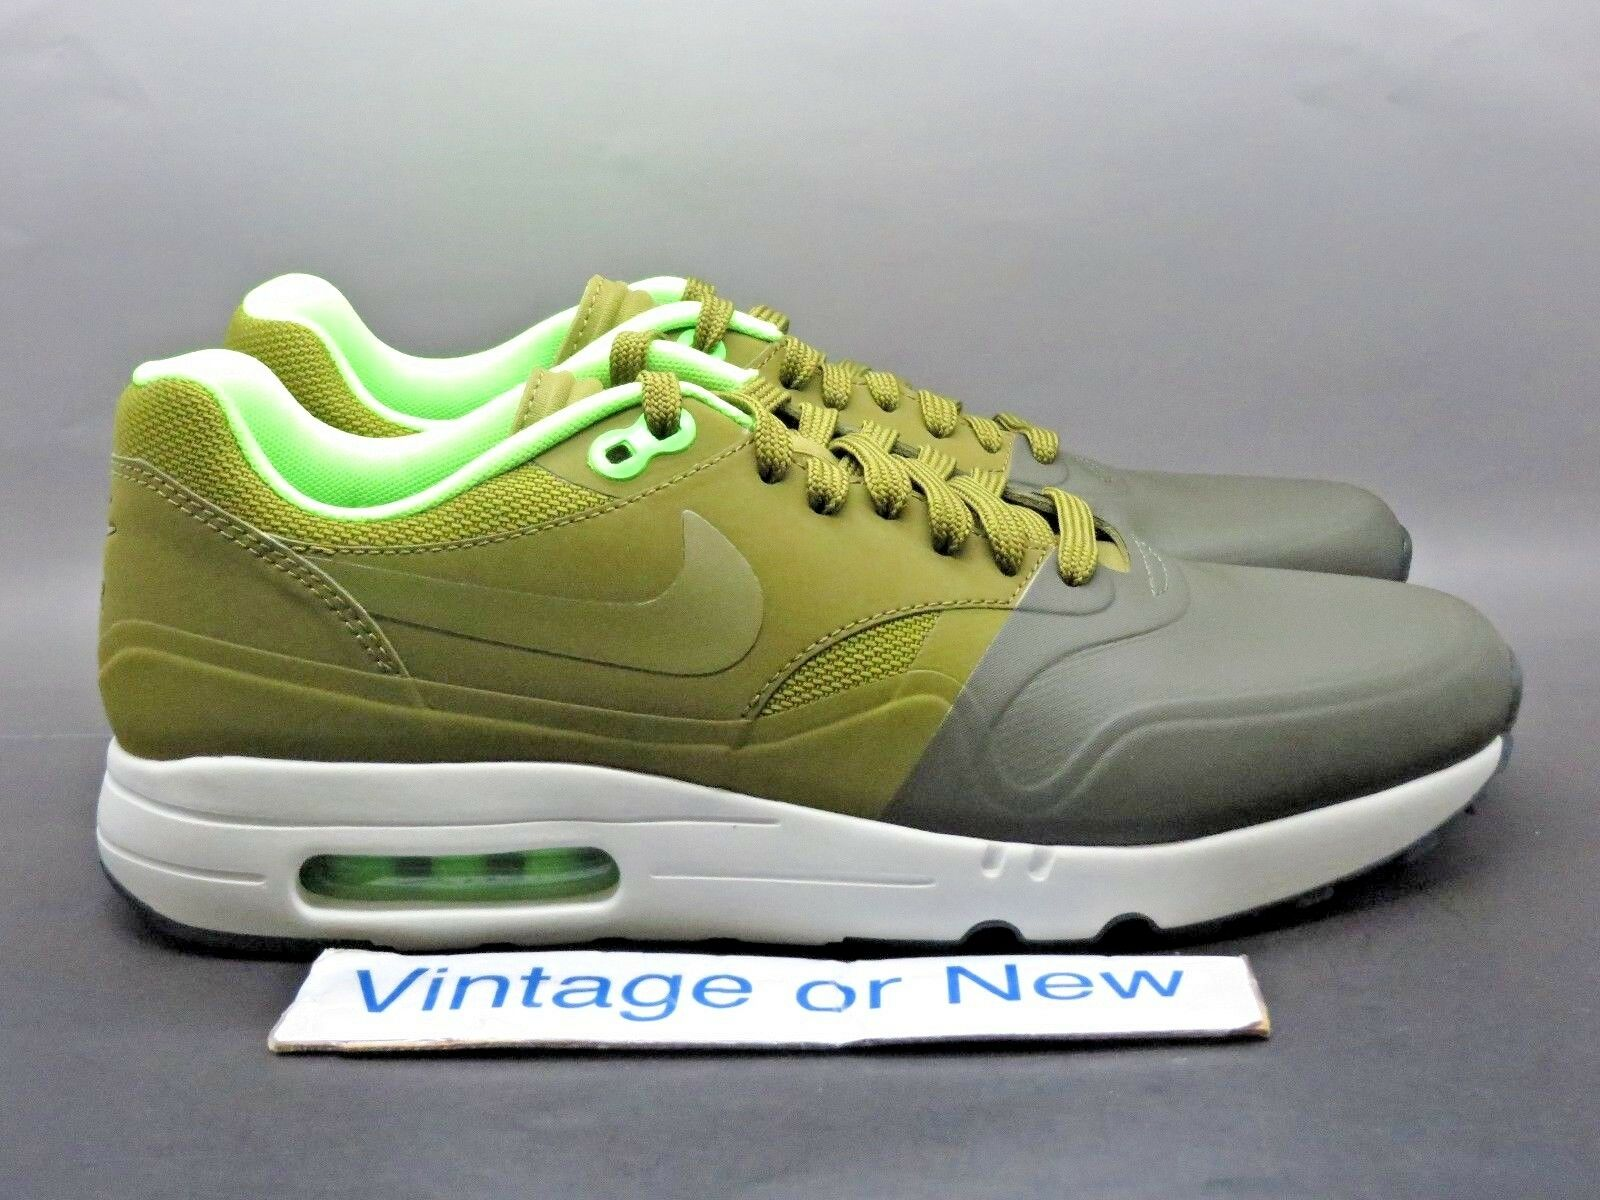 DS Nike Air Max 1 Ultra 2.0 SE Cargo Khaki Militia Green Running 875845-300 sz 9